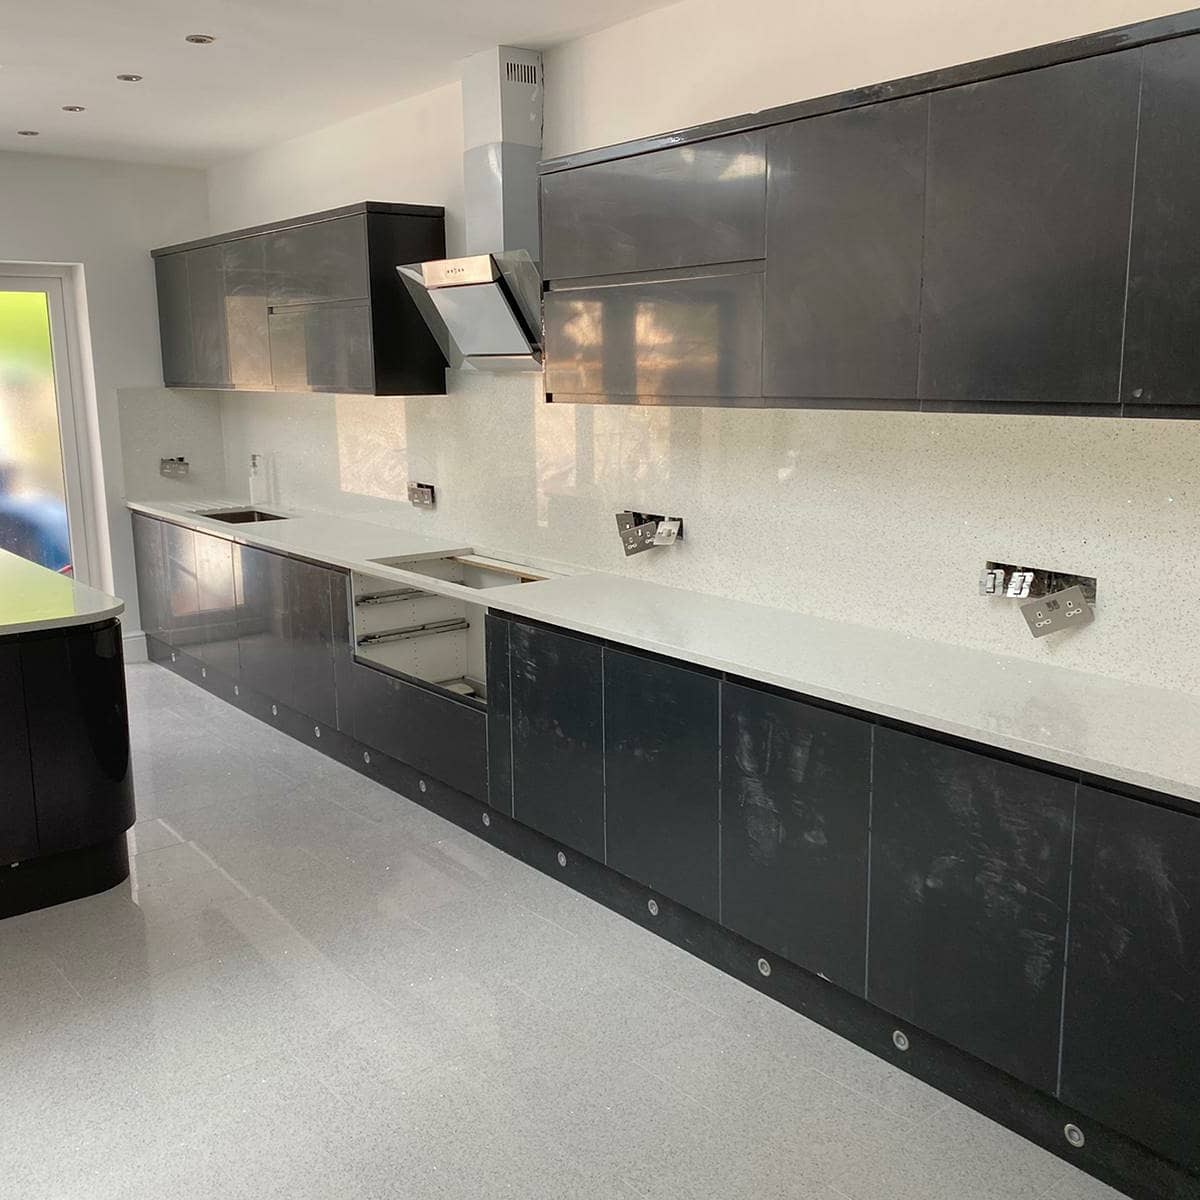 10 of The Best Kitchen Worktops: The Best Materials and Why You Should Choose Them